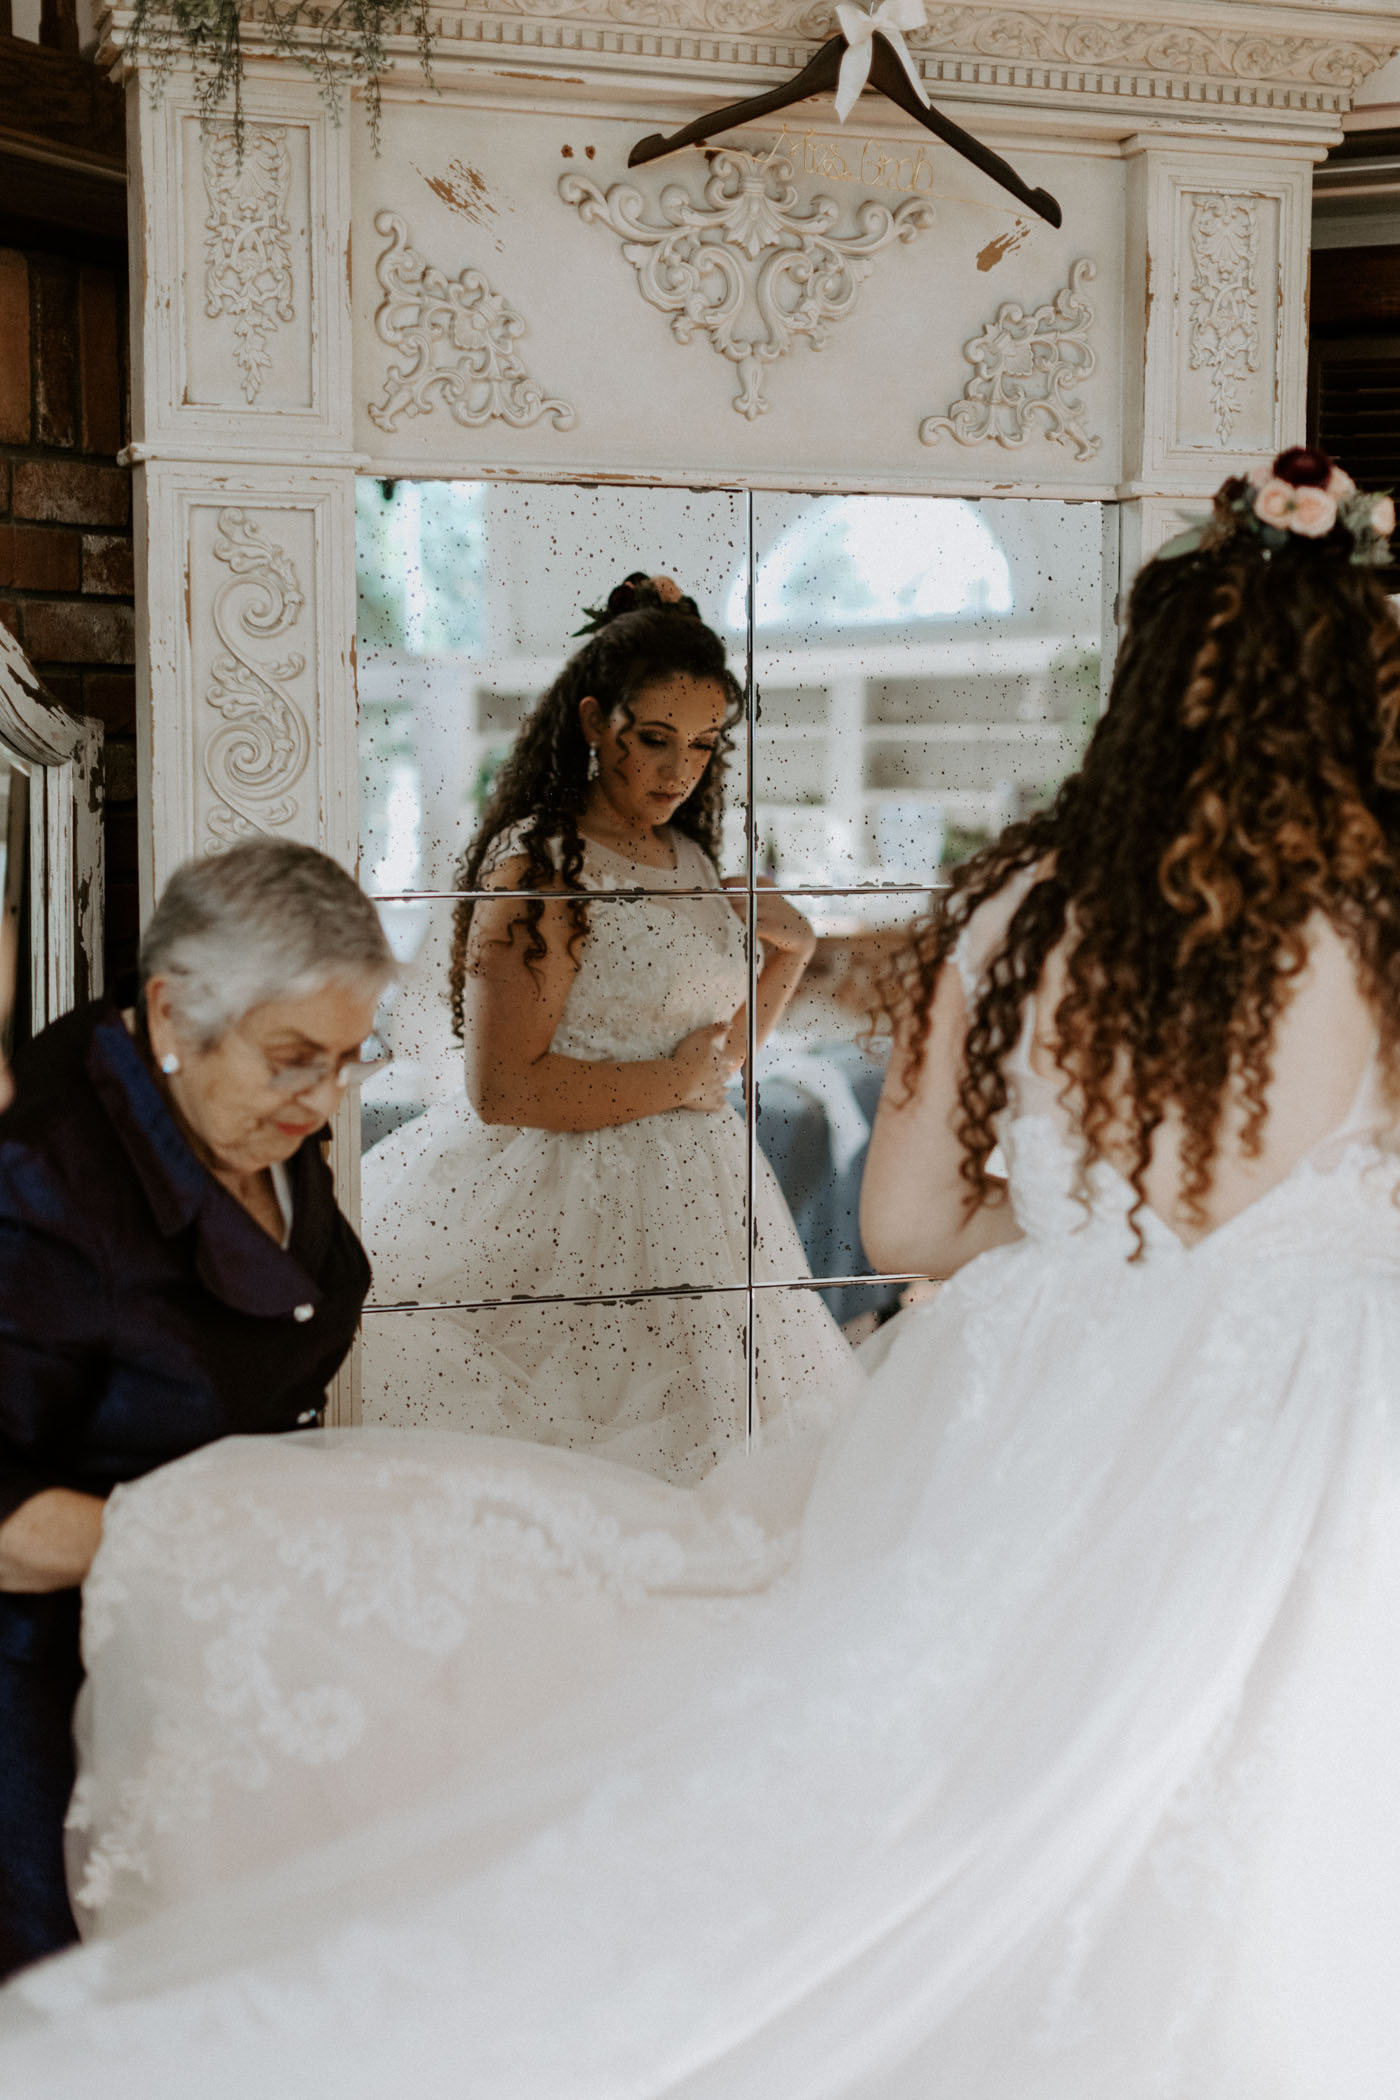 Brides grandma and mom helpingg her put on her wedding dress before her ceremony starts